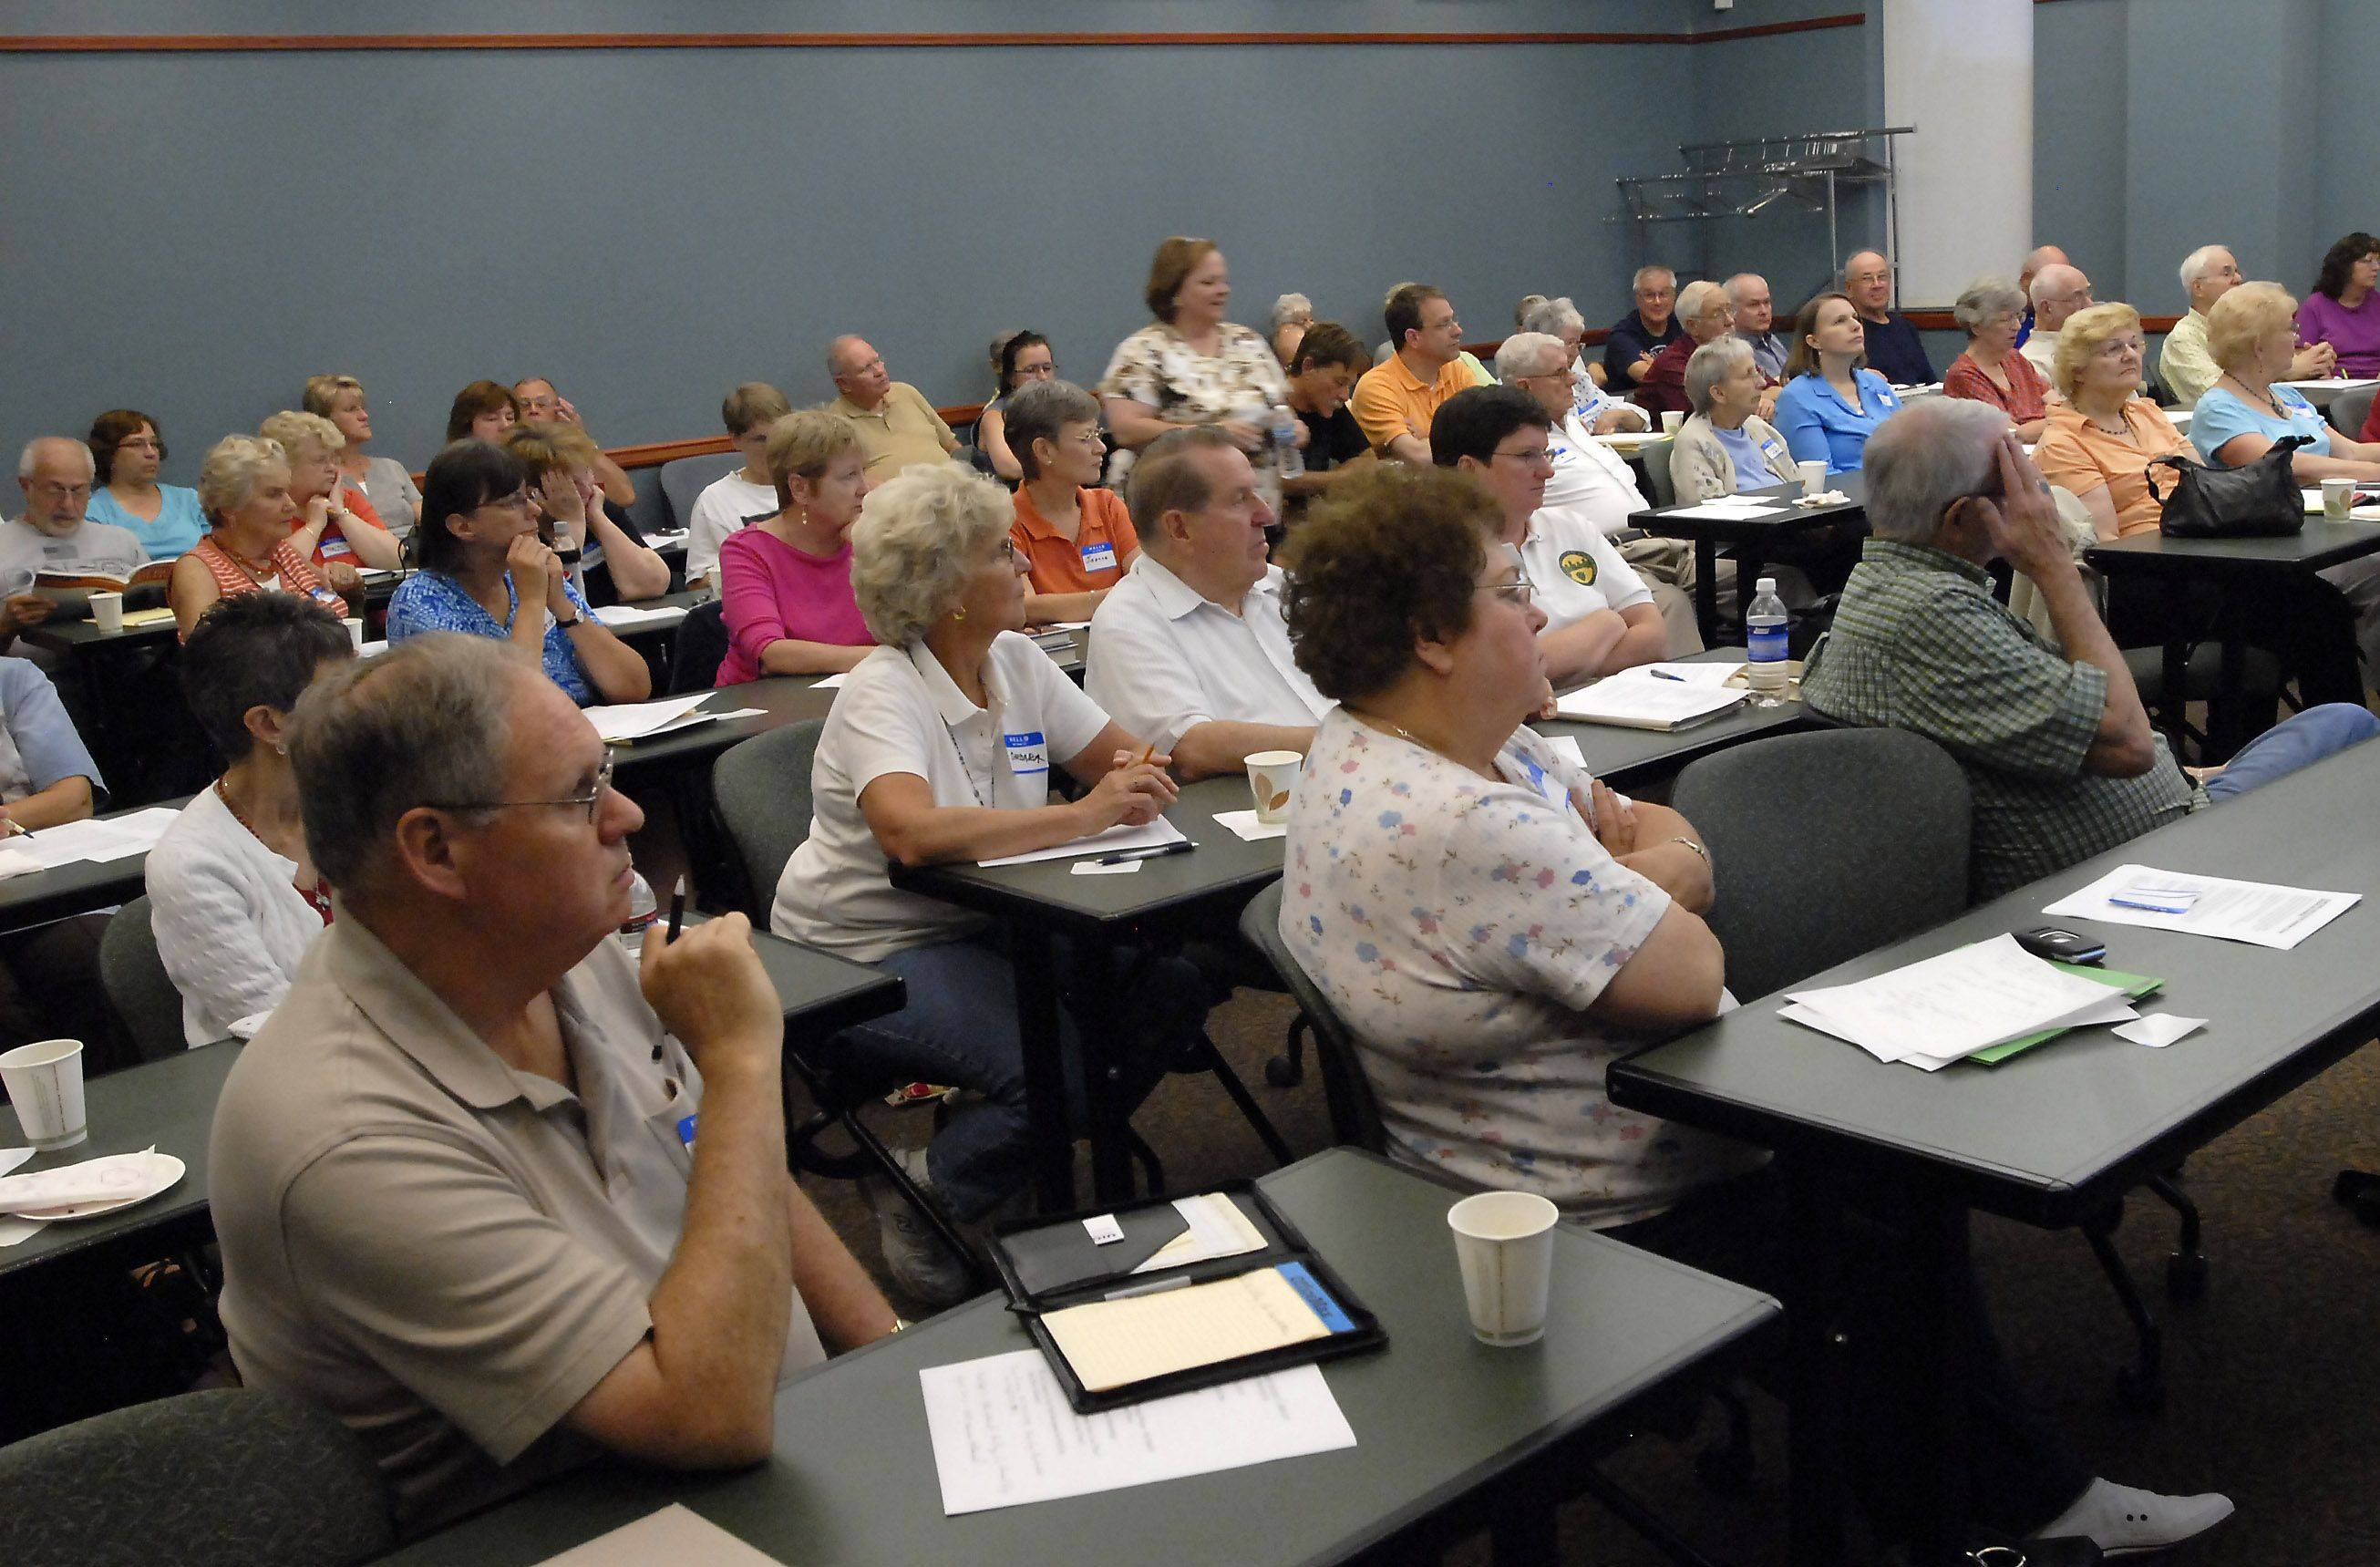 The Schaumburg Township District Library genealogy group draws a full house to its monthly meeting.